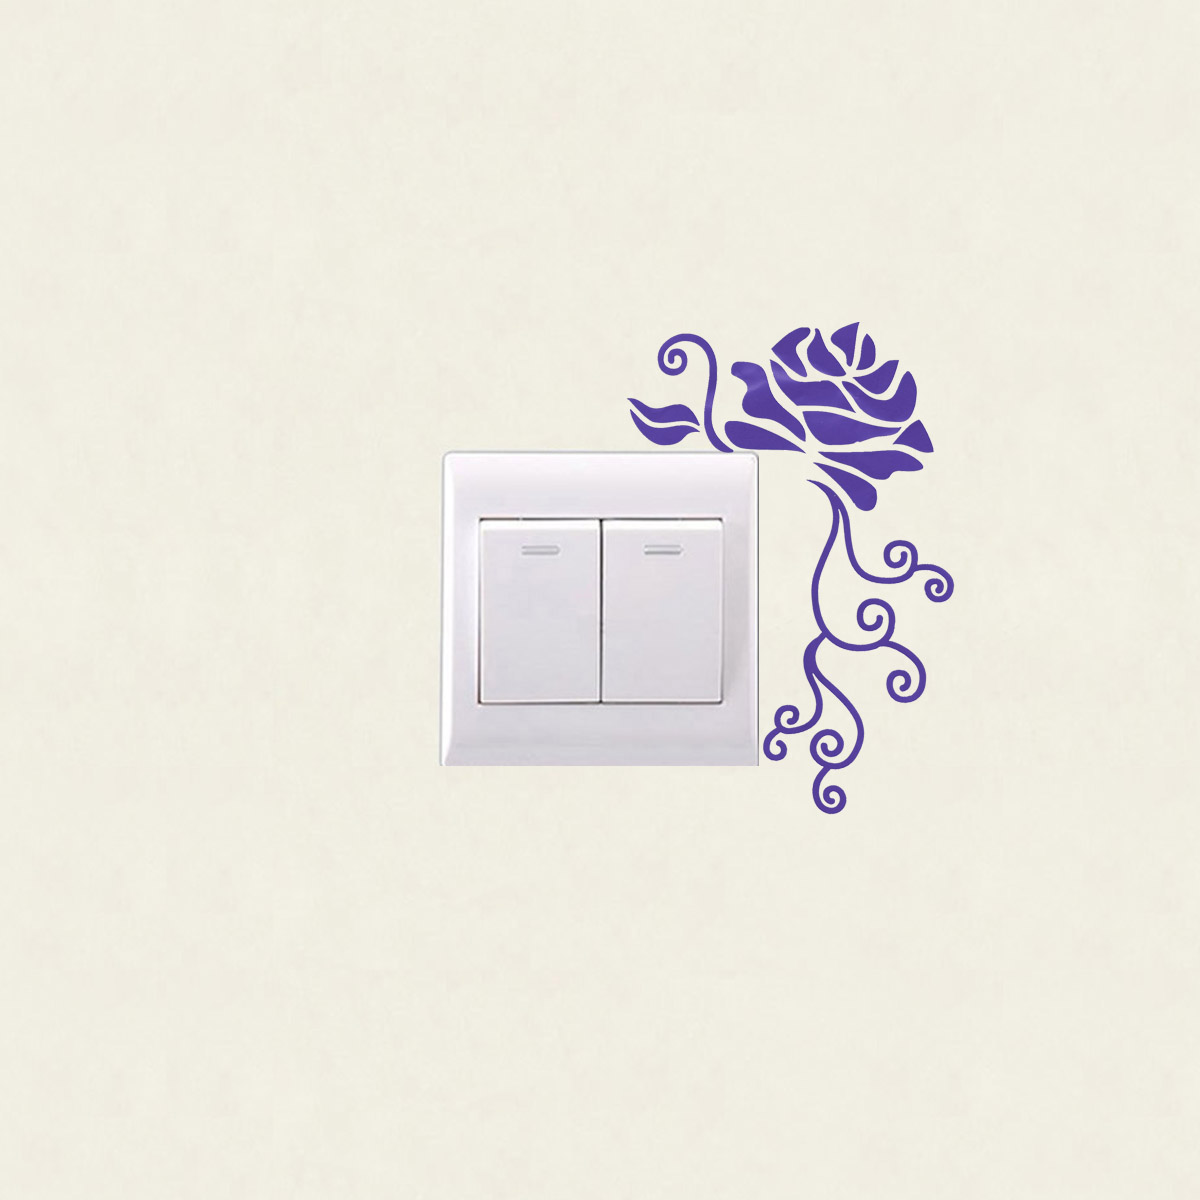 Rose flower wall sticker light switch decals removable for Mural lighting